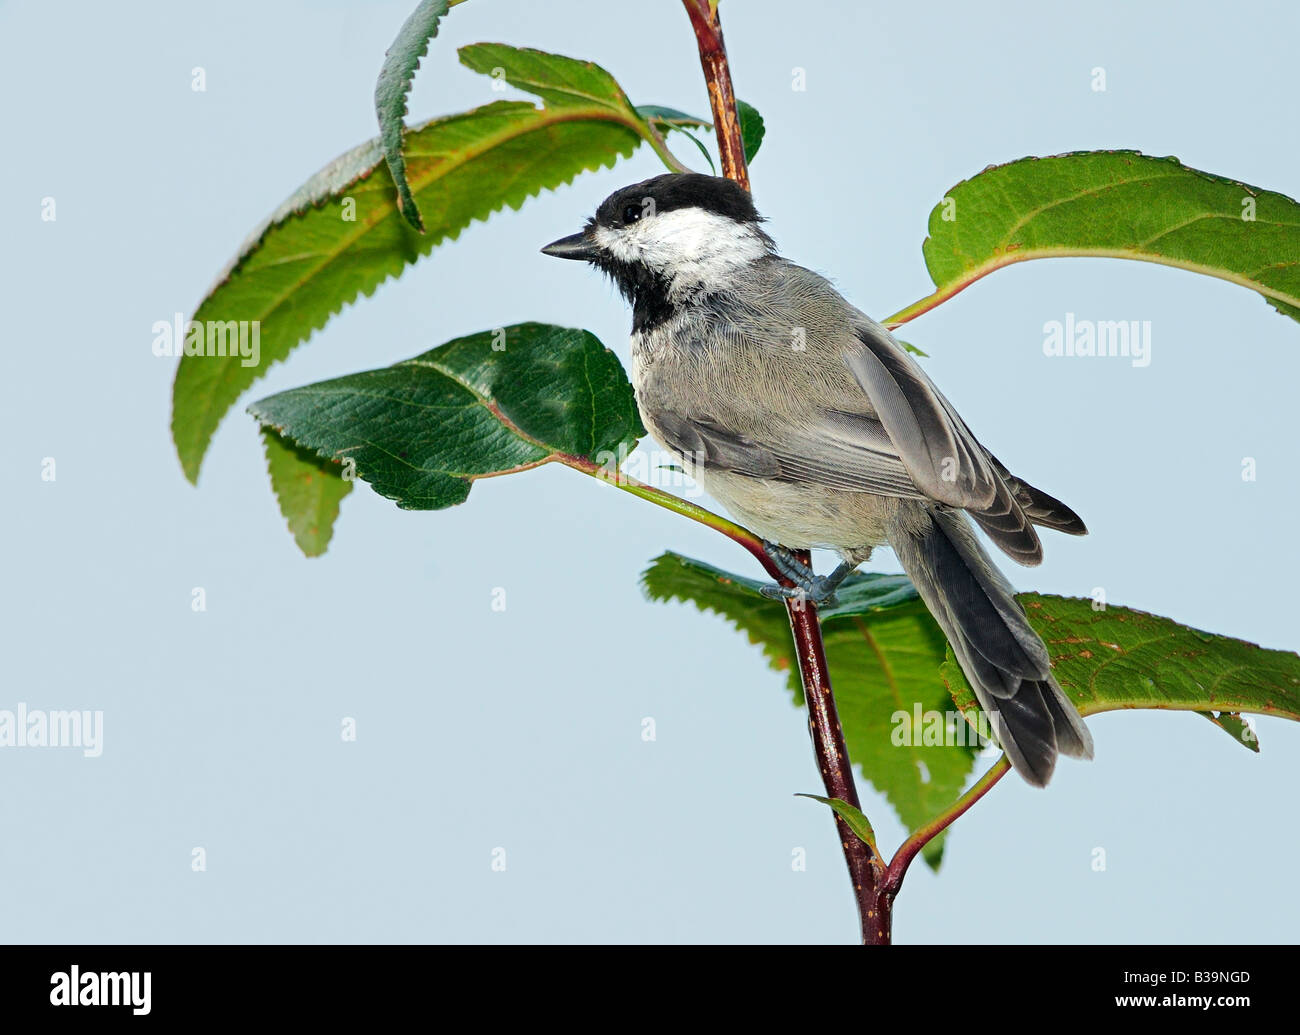 A Black capped Chickadee, Poecile atricapilla, grasps a branch. Oklahoma, USA. - Stock Image